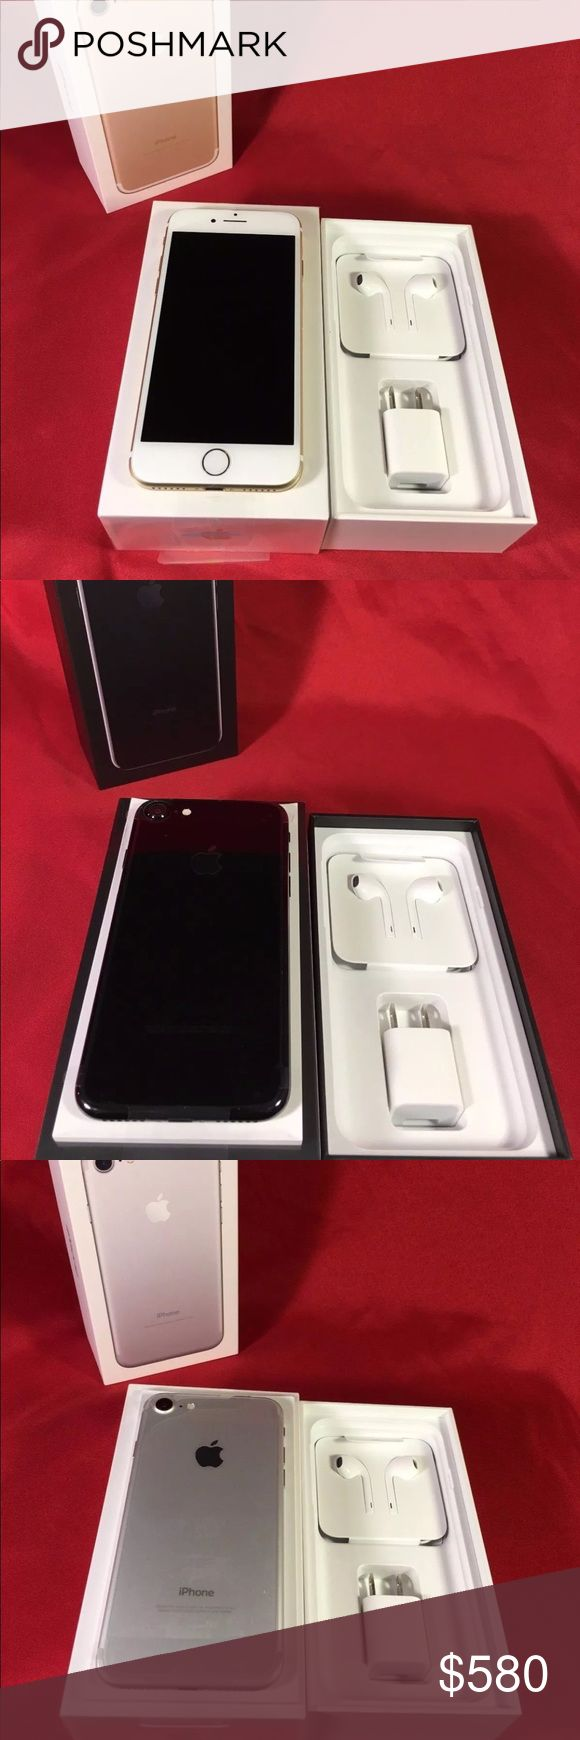 Apple iPhone 7 / 7 Plus (Factory Unlocked) 100% Authentic 🔹 We are a very negotiable service 🔹 We provide overnight shipping and express shipping 🔹 Our transactions are made through third party applications 🔹 If you are interested in buying this product please contact us via 646-961-2836 🔹 Apple Accessories